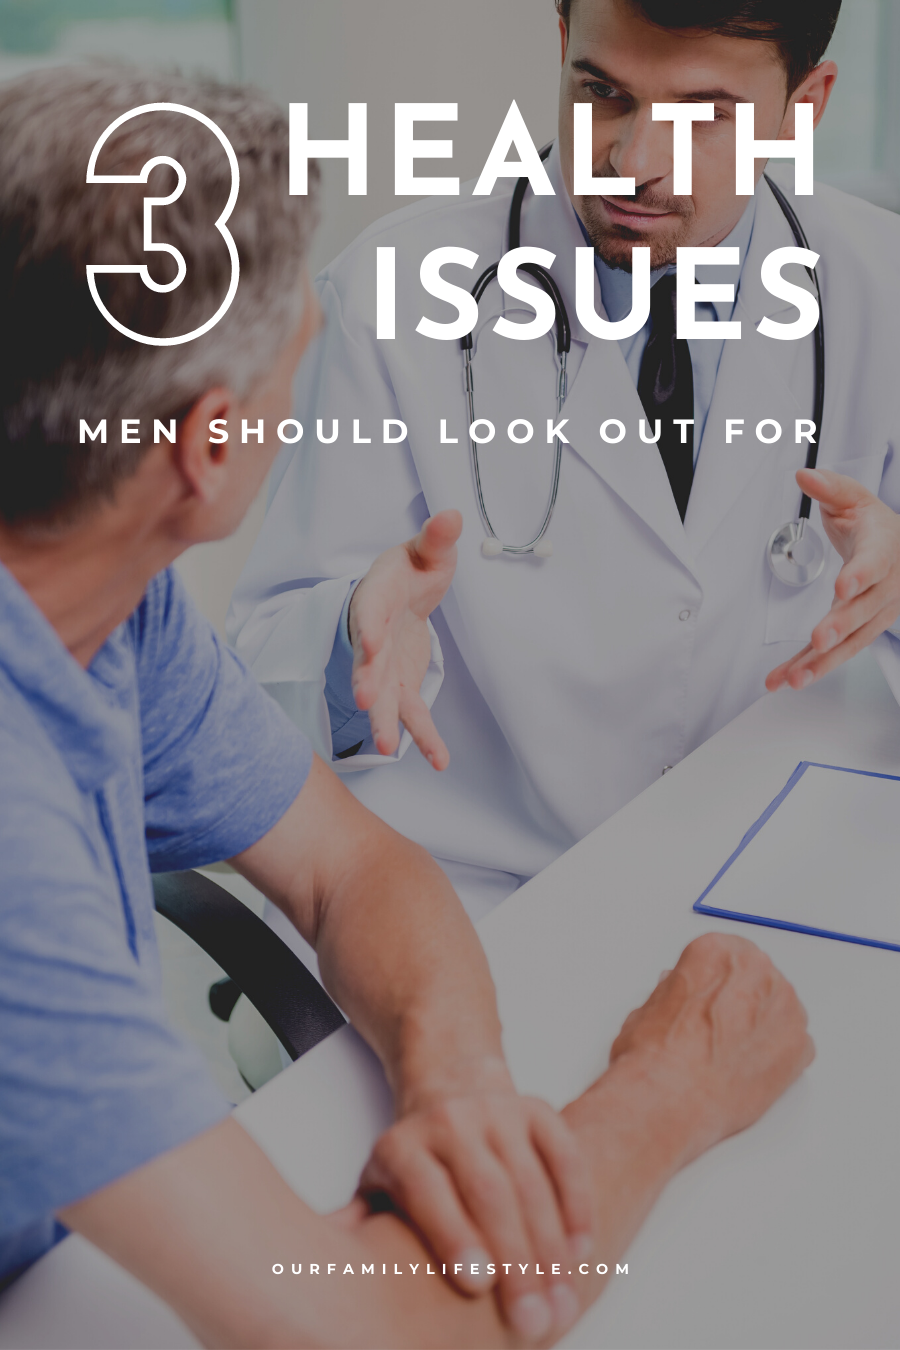 3 Health Issues Men Should Look Out For